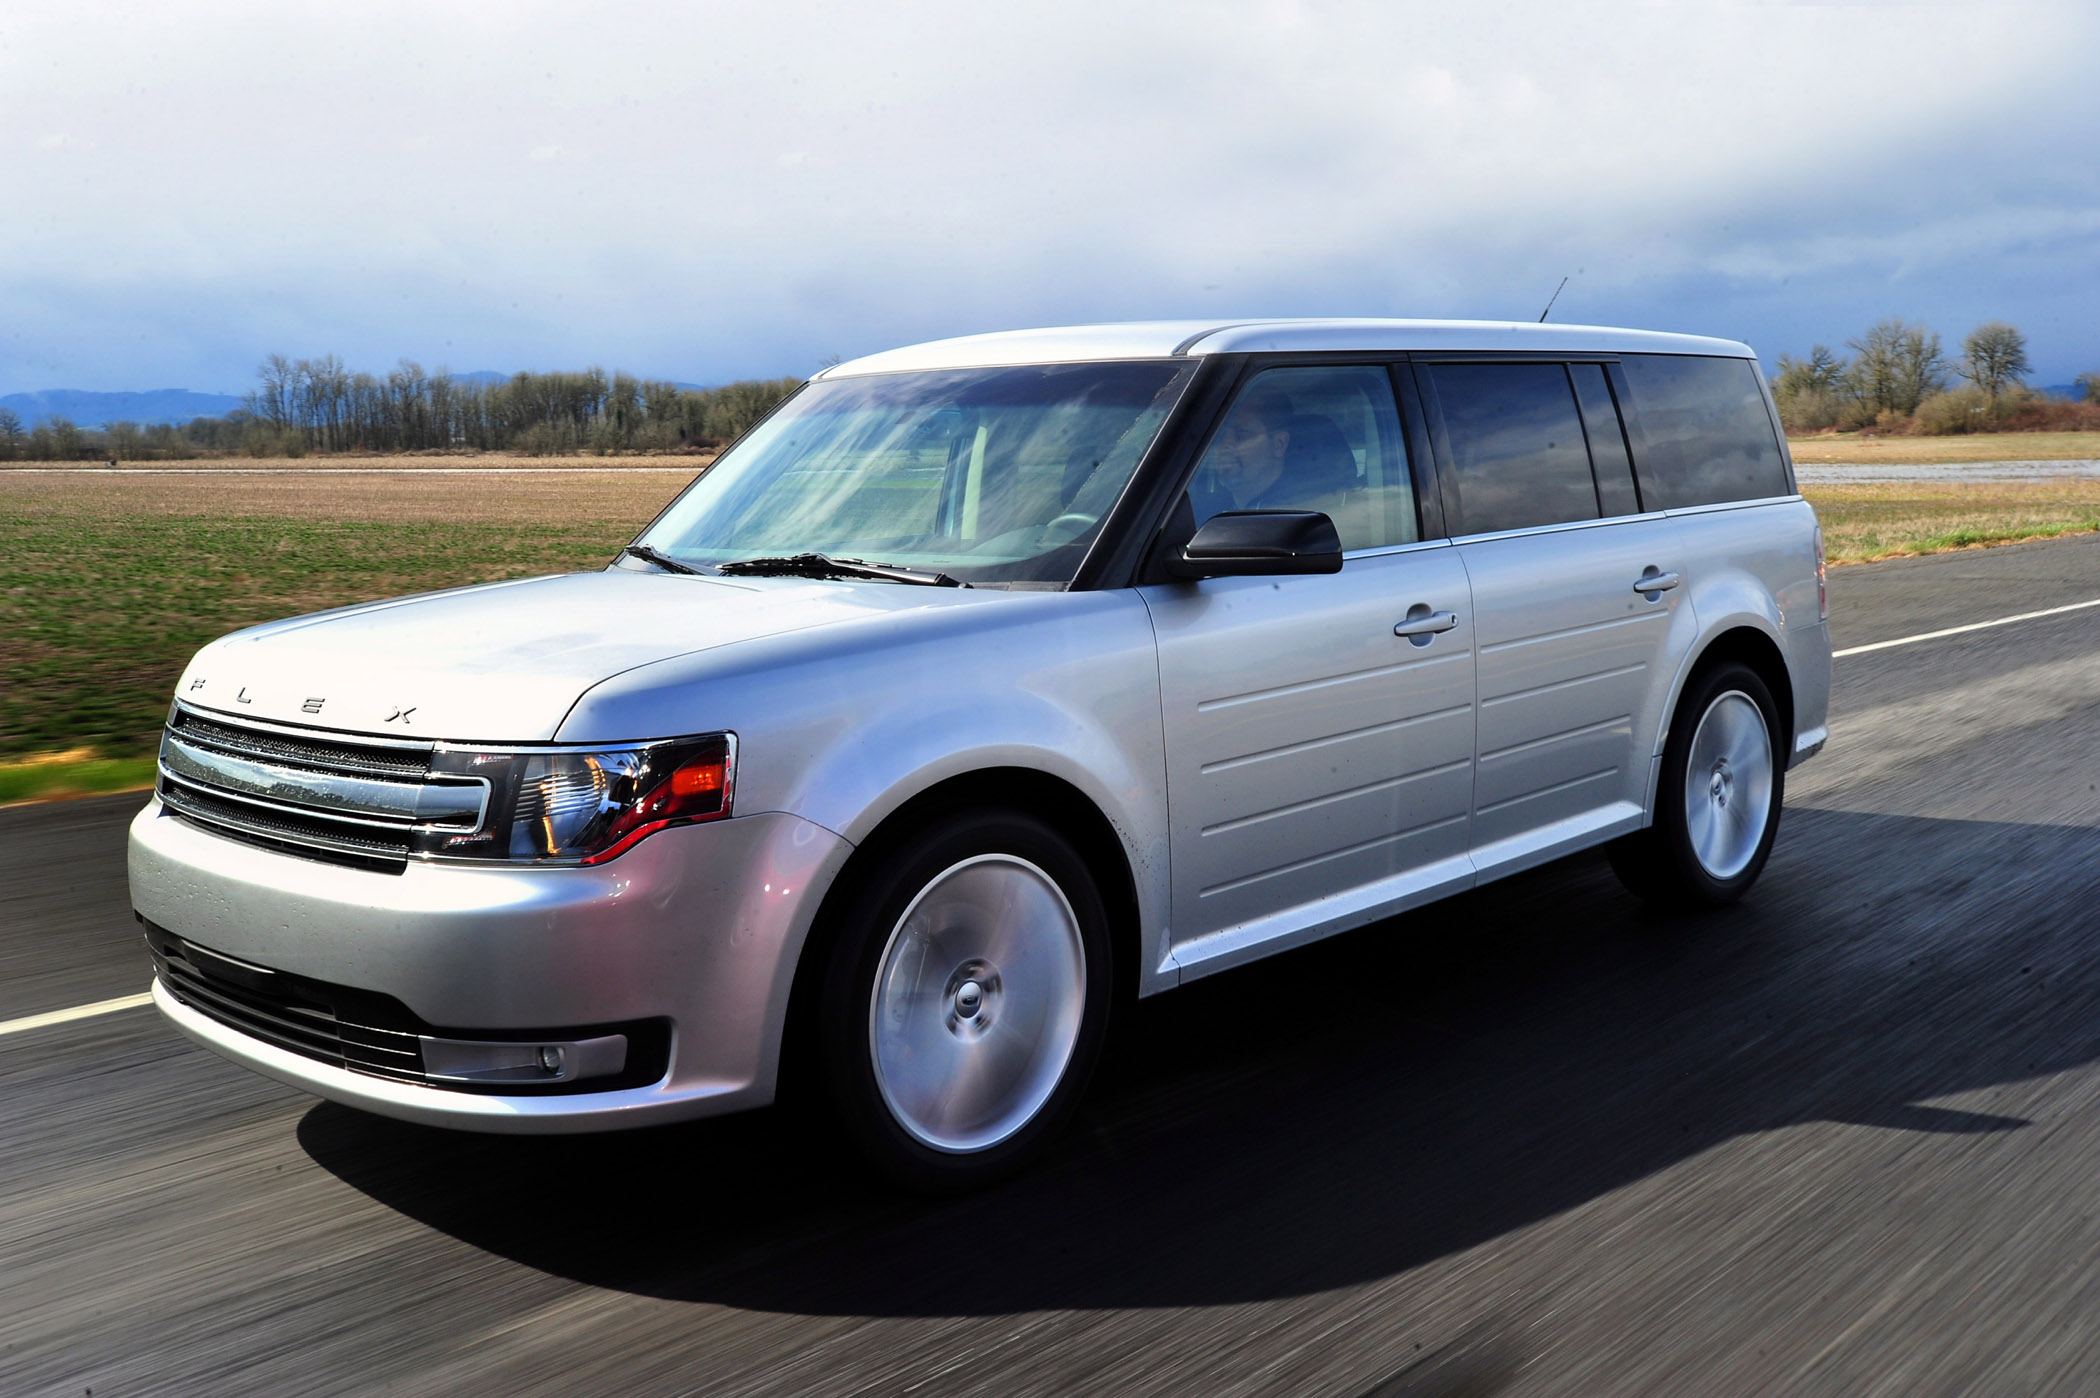 Manufacturer photo: The new three-row, seven-passenger 2013 Ford Flex offers comfort and advanced technology in a distinctive package, including a sleek new front end, modern interior and six all-new wheel styles